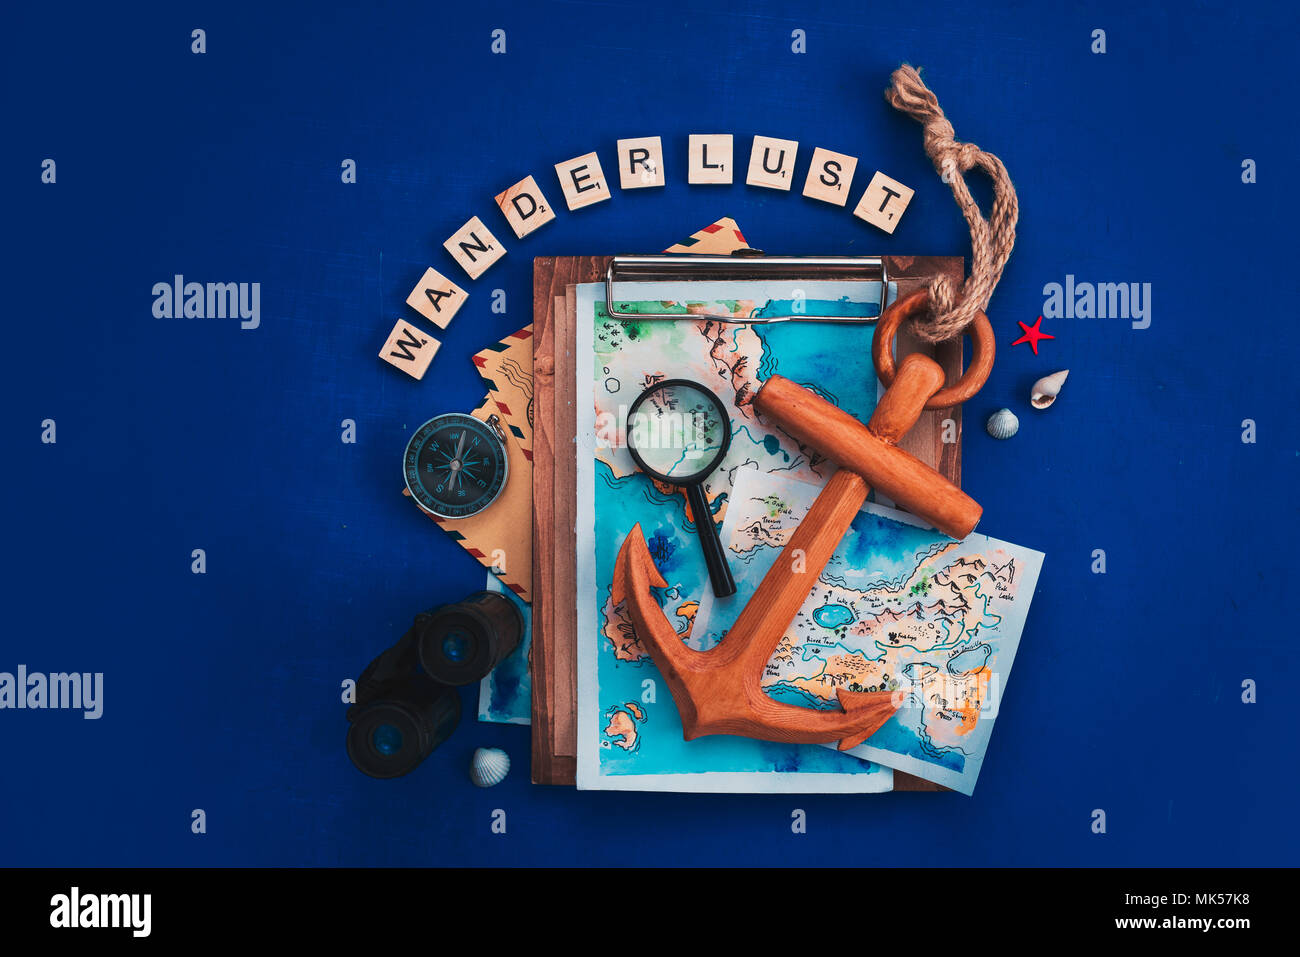 Travel and exploration concept with watercolor maps, compass, wooden anchor, binoculars, magnifying glass and Wanderlust scrabble letters. Vacation flat lay on a navy blue background with copy space - Stock Image